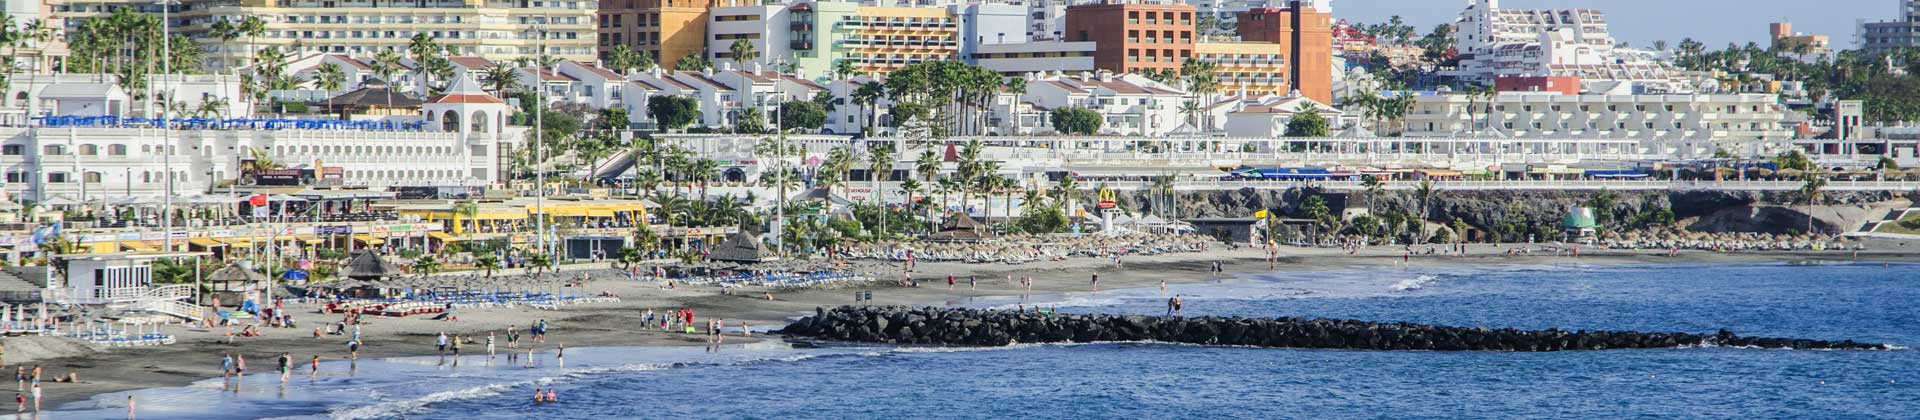 https://www.goodmorningtenerife.com/wp-content/uploads/2014/08/04_slide_landscape_GM_Tenerife.jpg